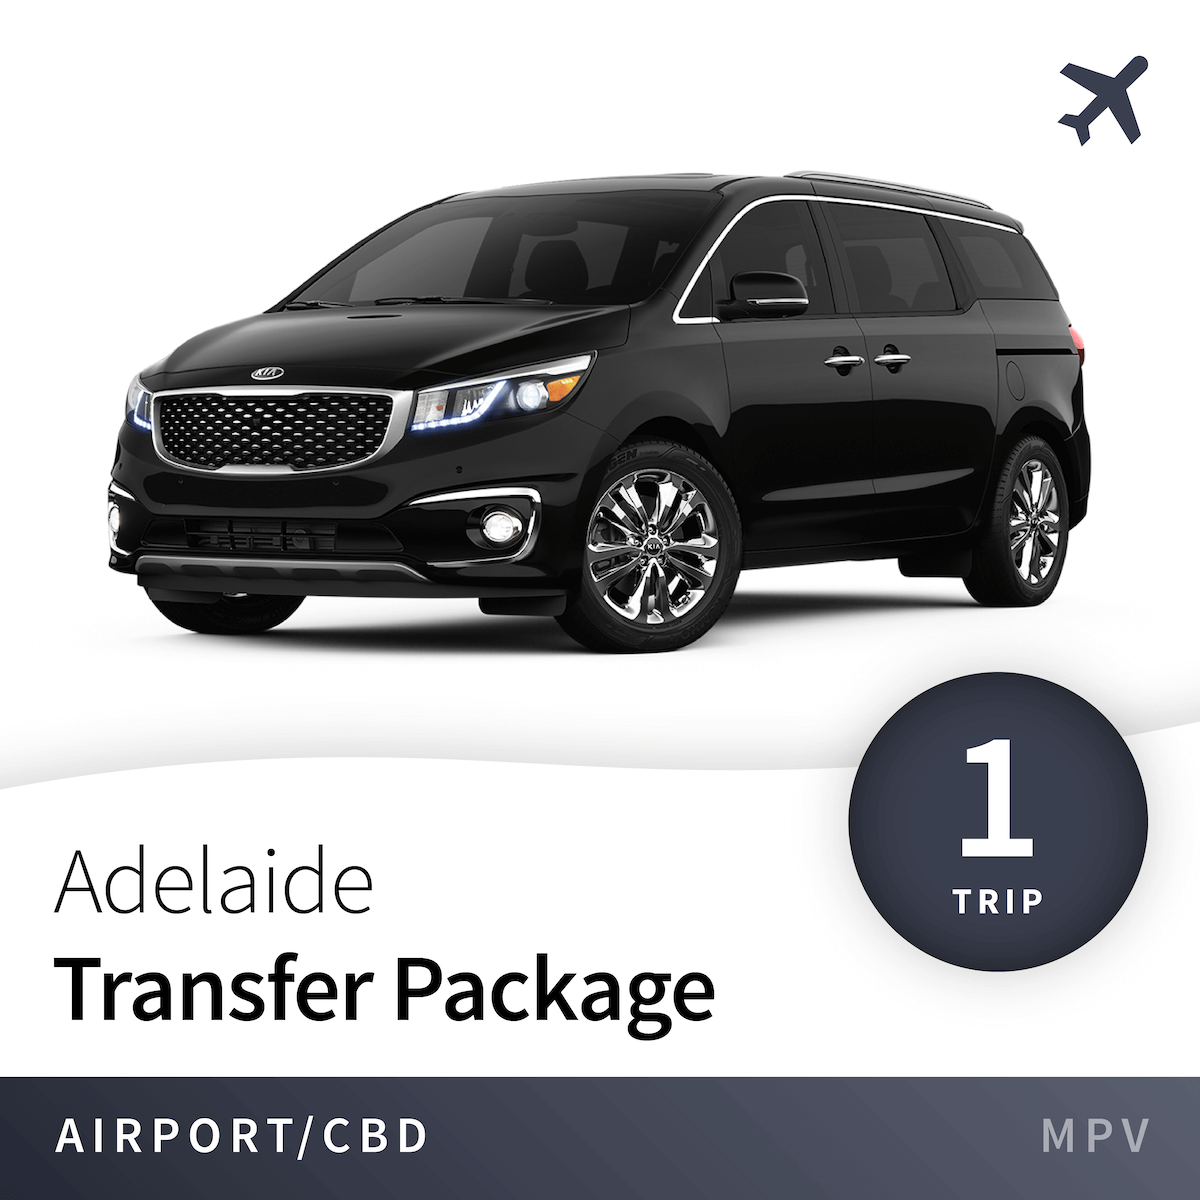 Adelaide Airport Transfer Package - MPV (1 Trip) 11